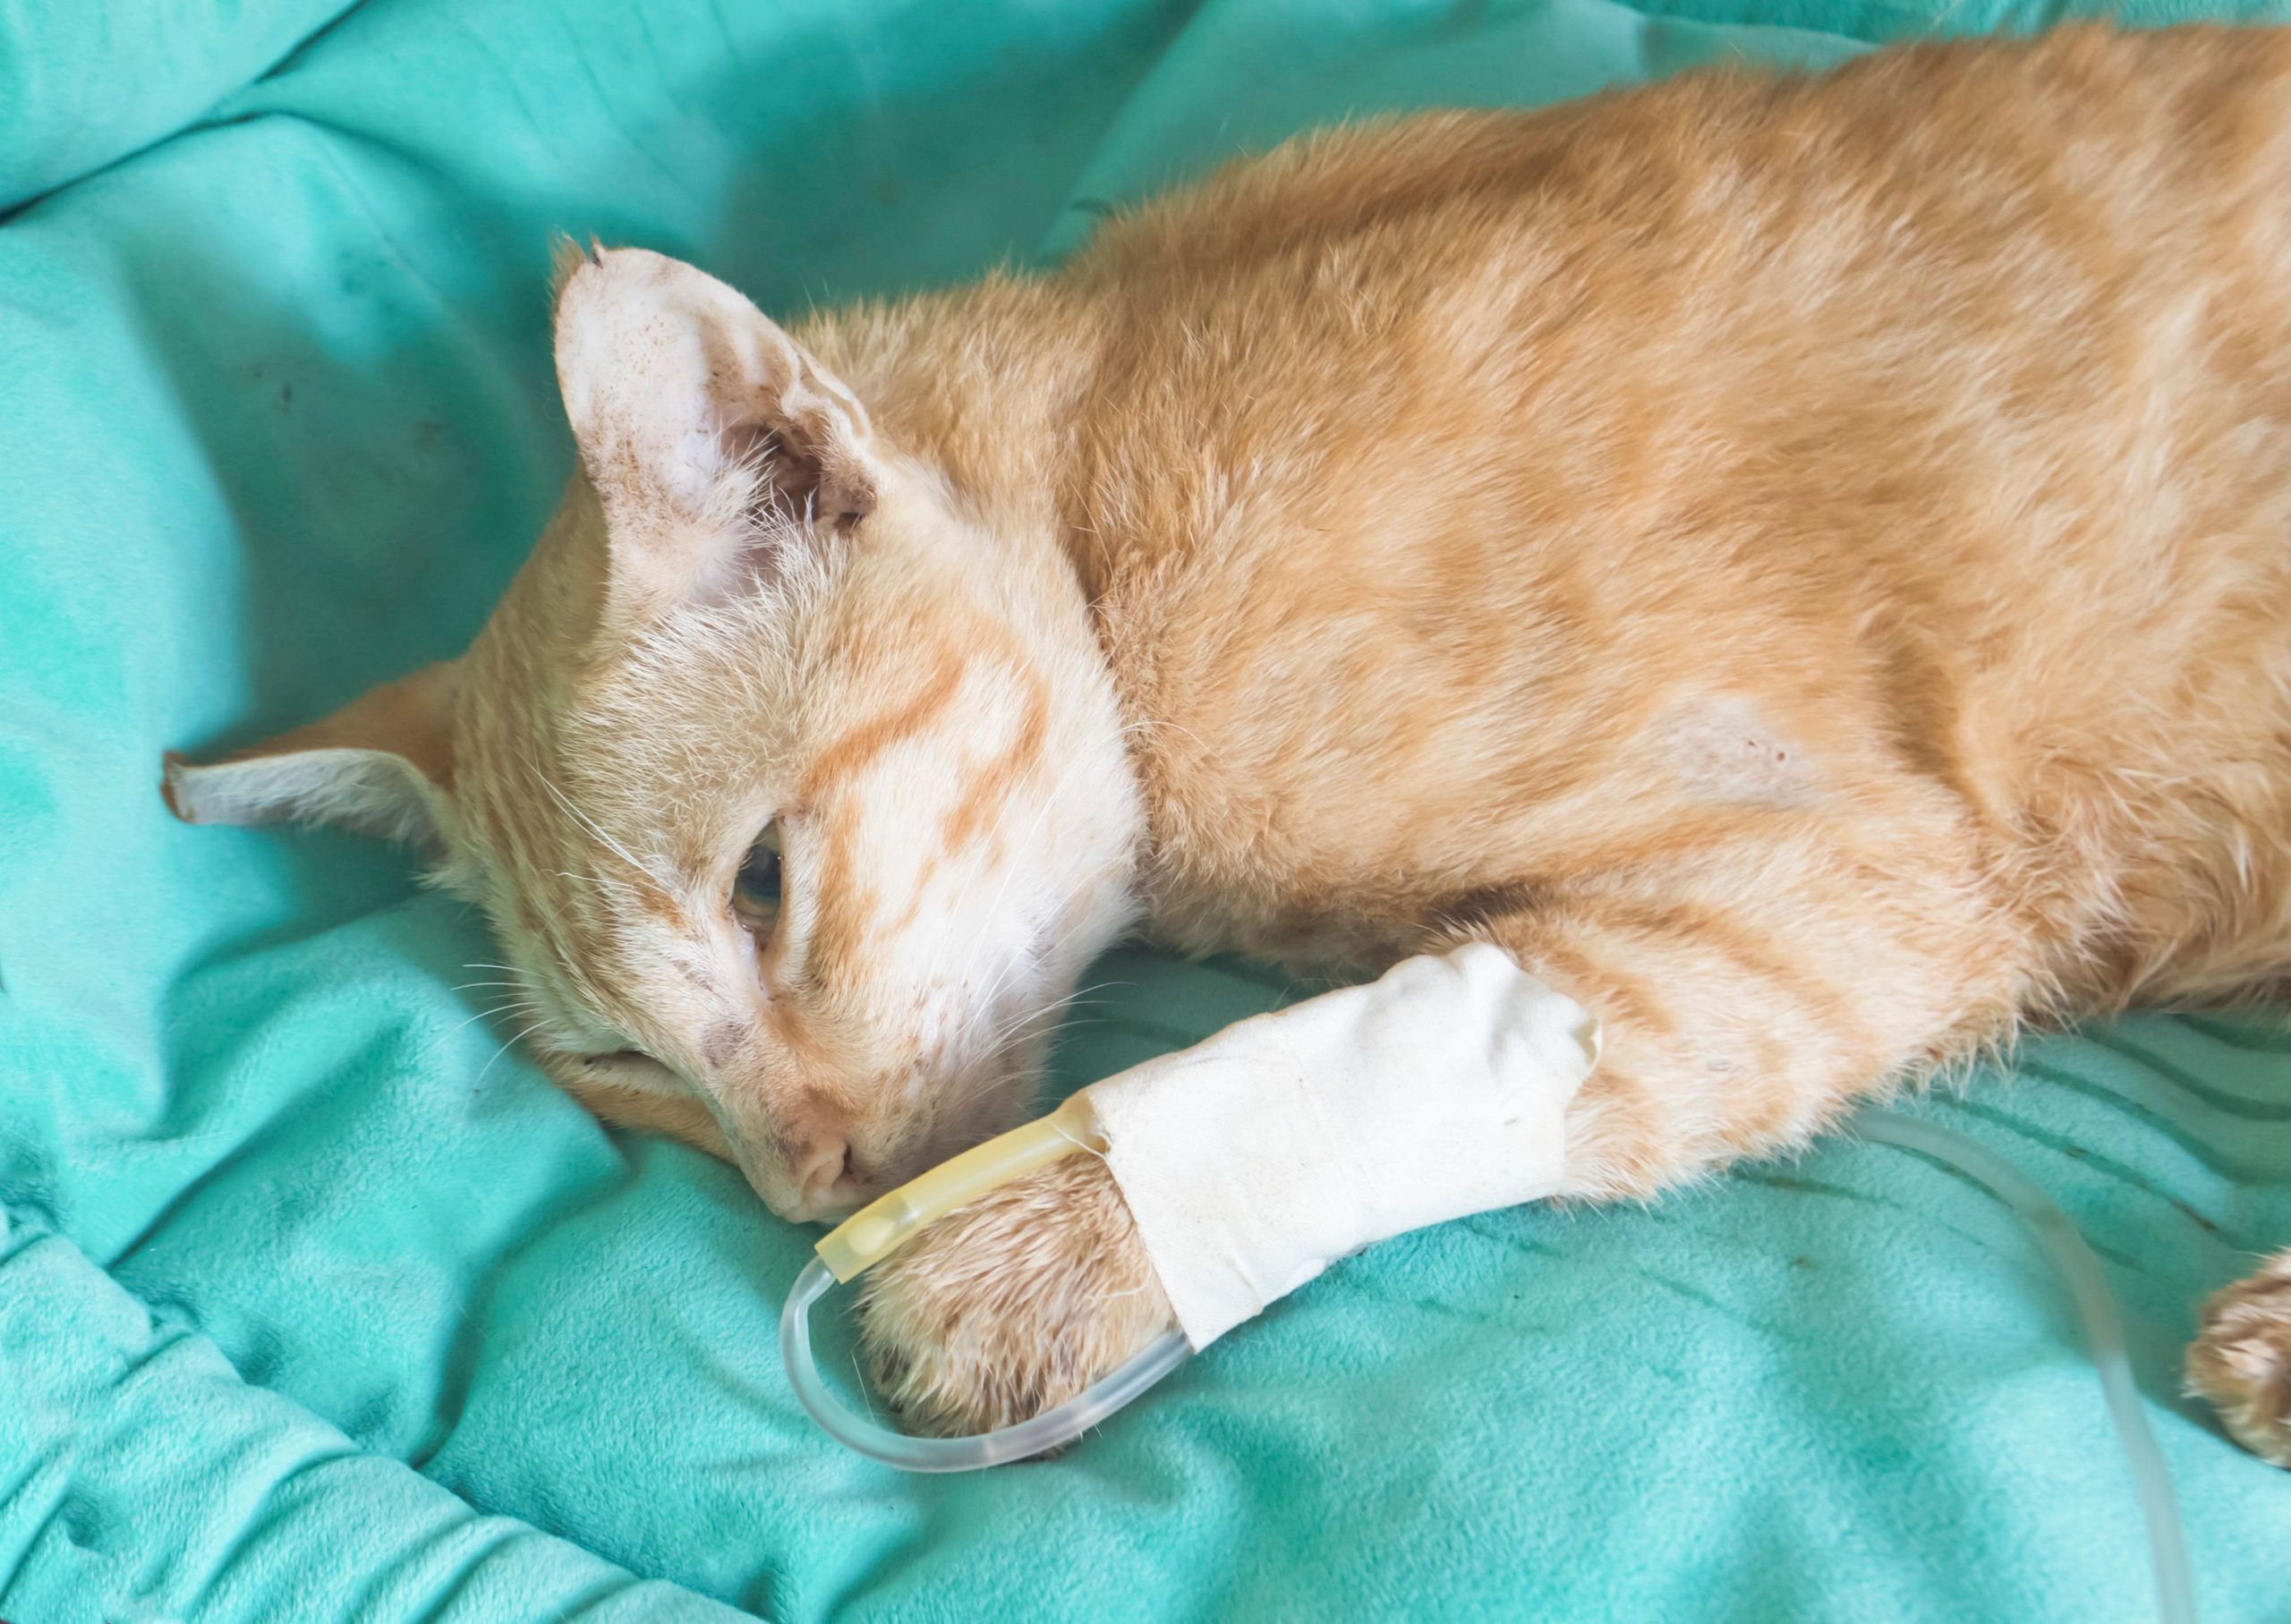 orange cat laying on blue blanket with fluid therapy IV in foreleg